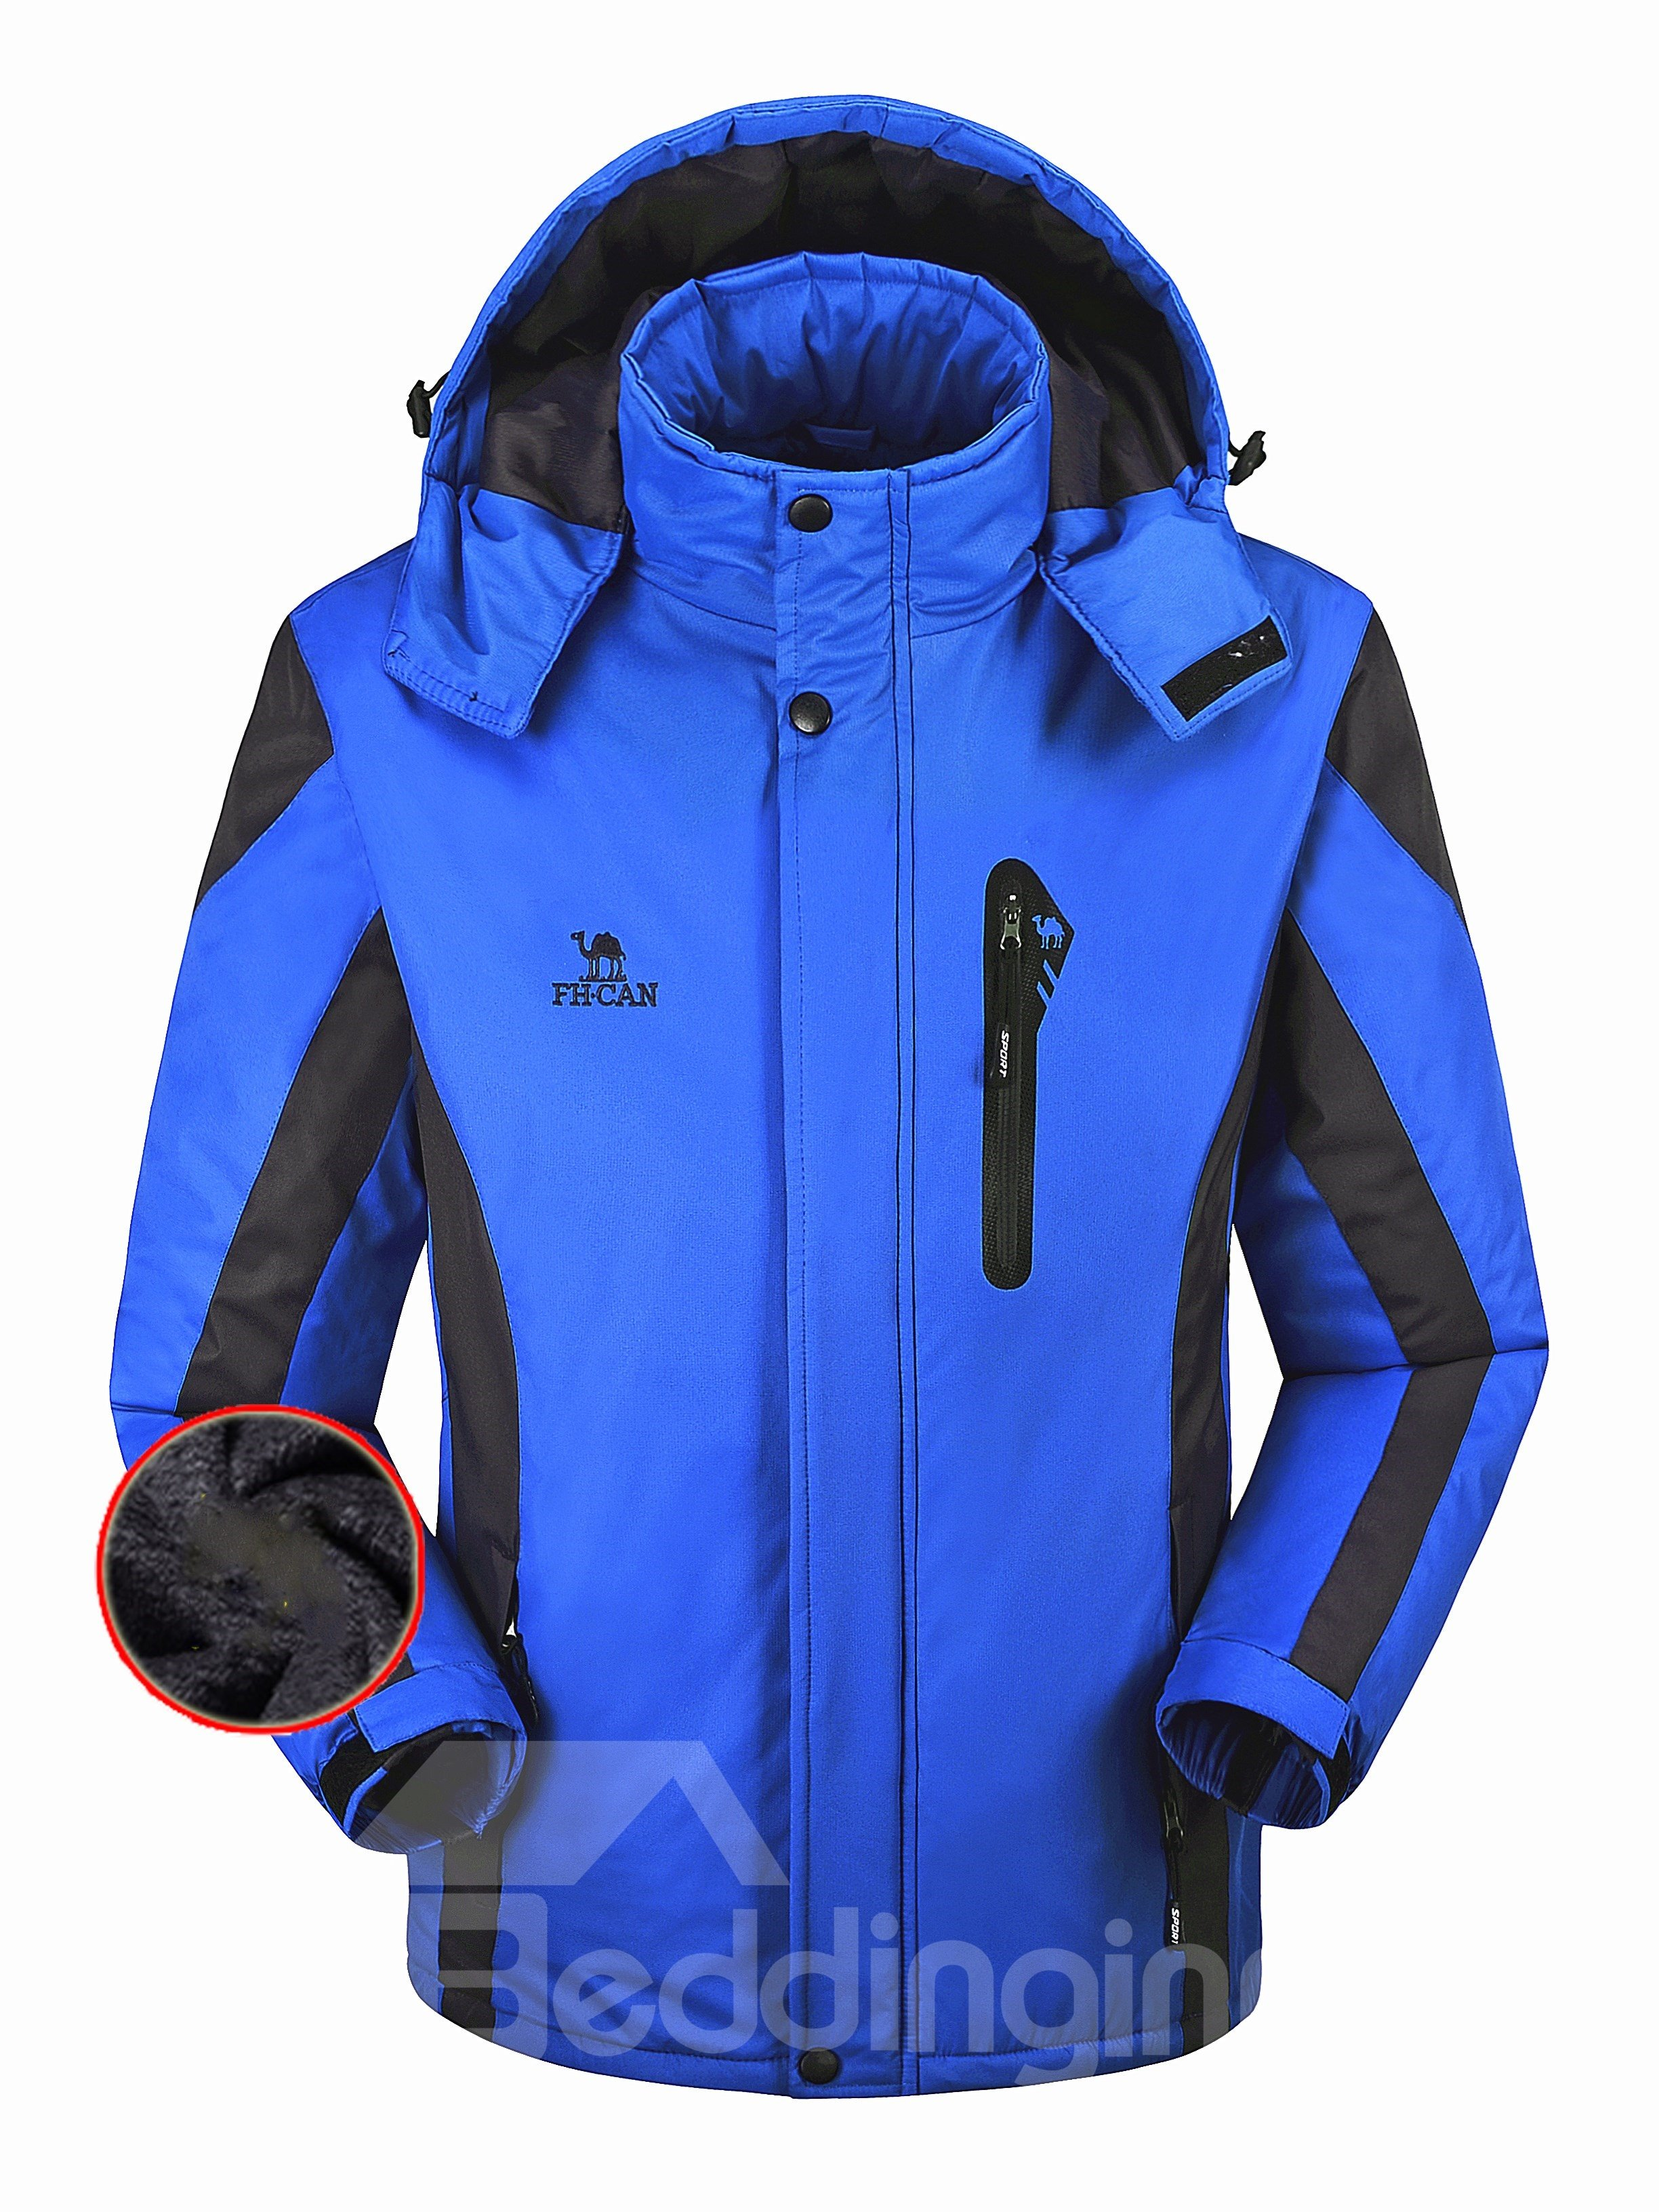 Male Outdoor Cloth with Thermal Zip-Front and Removable Hat Windproof Jacket